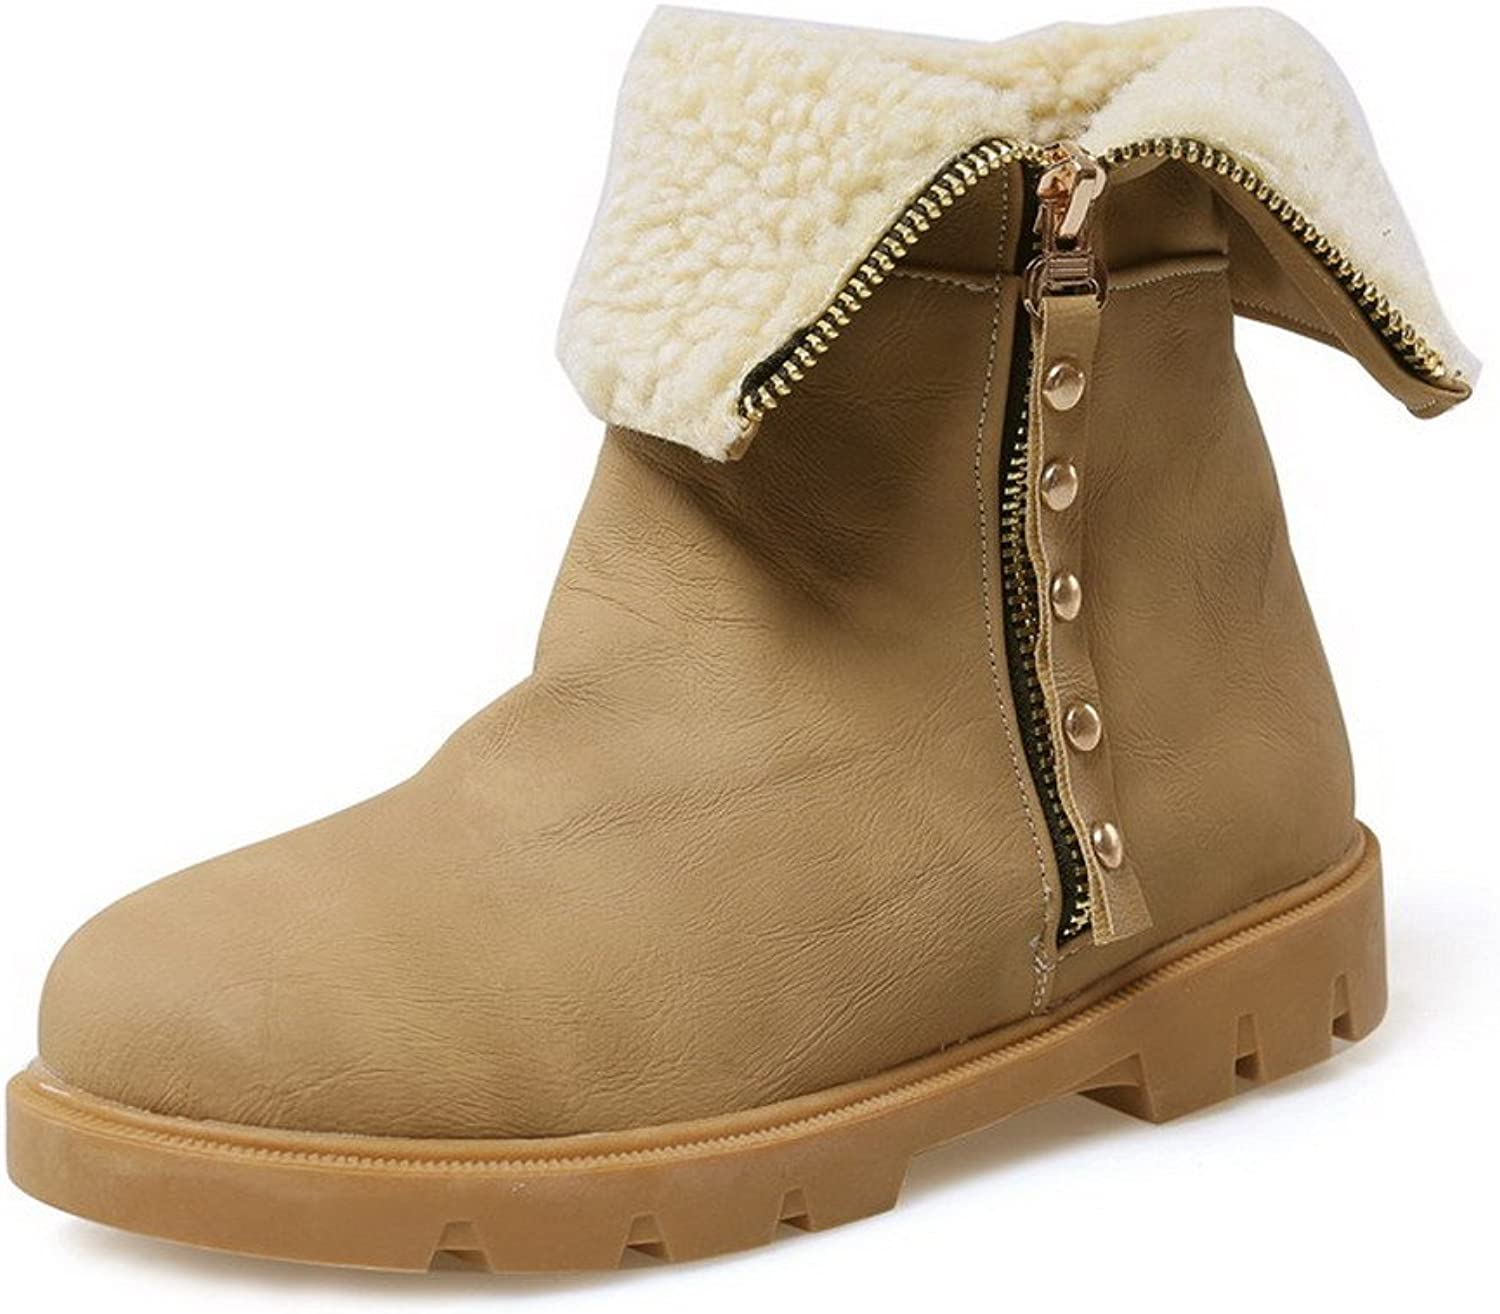 WeenFashion Women's Low-Top Zipper Soft Material Low-Heels Round Closed Toe Boots